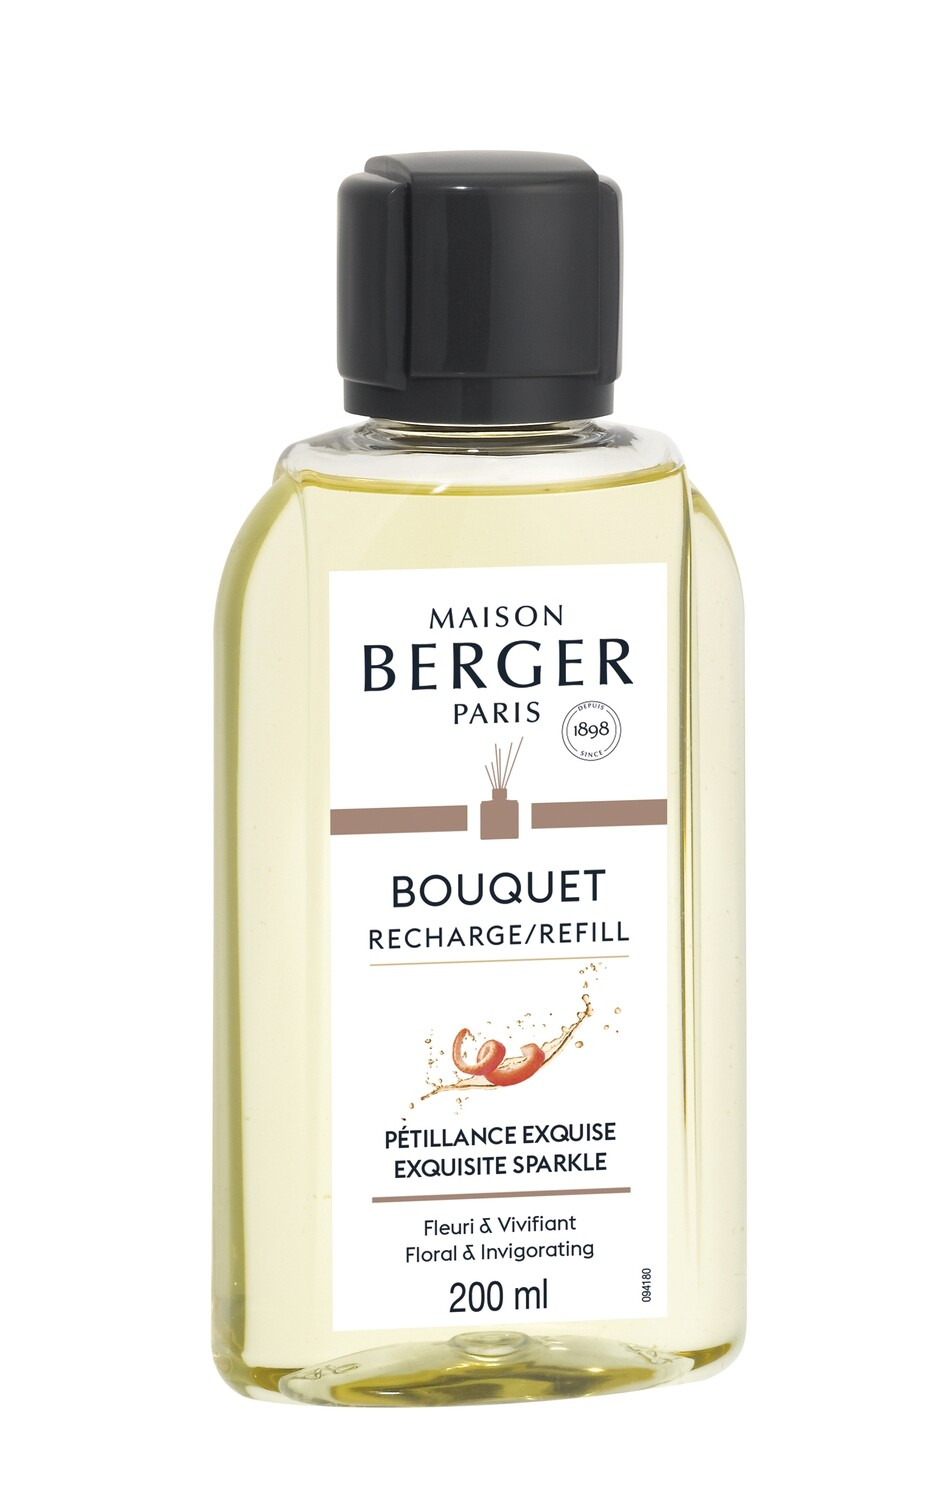 Maison Berger Duftpinde Refill - Exquisite Sparkle(200ml)